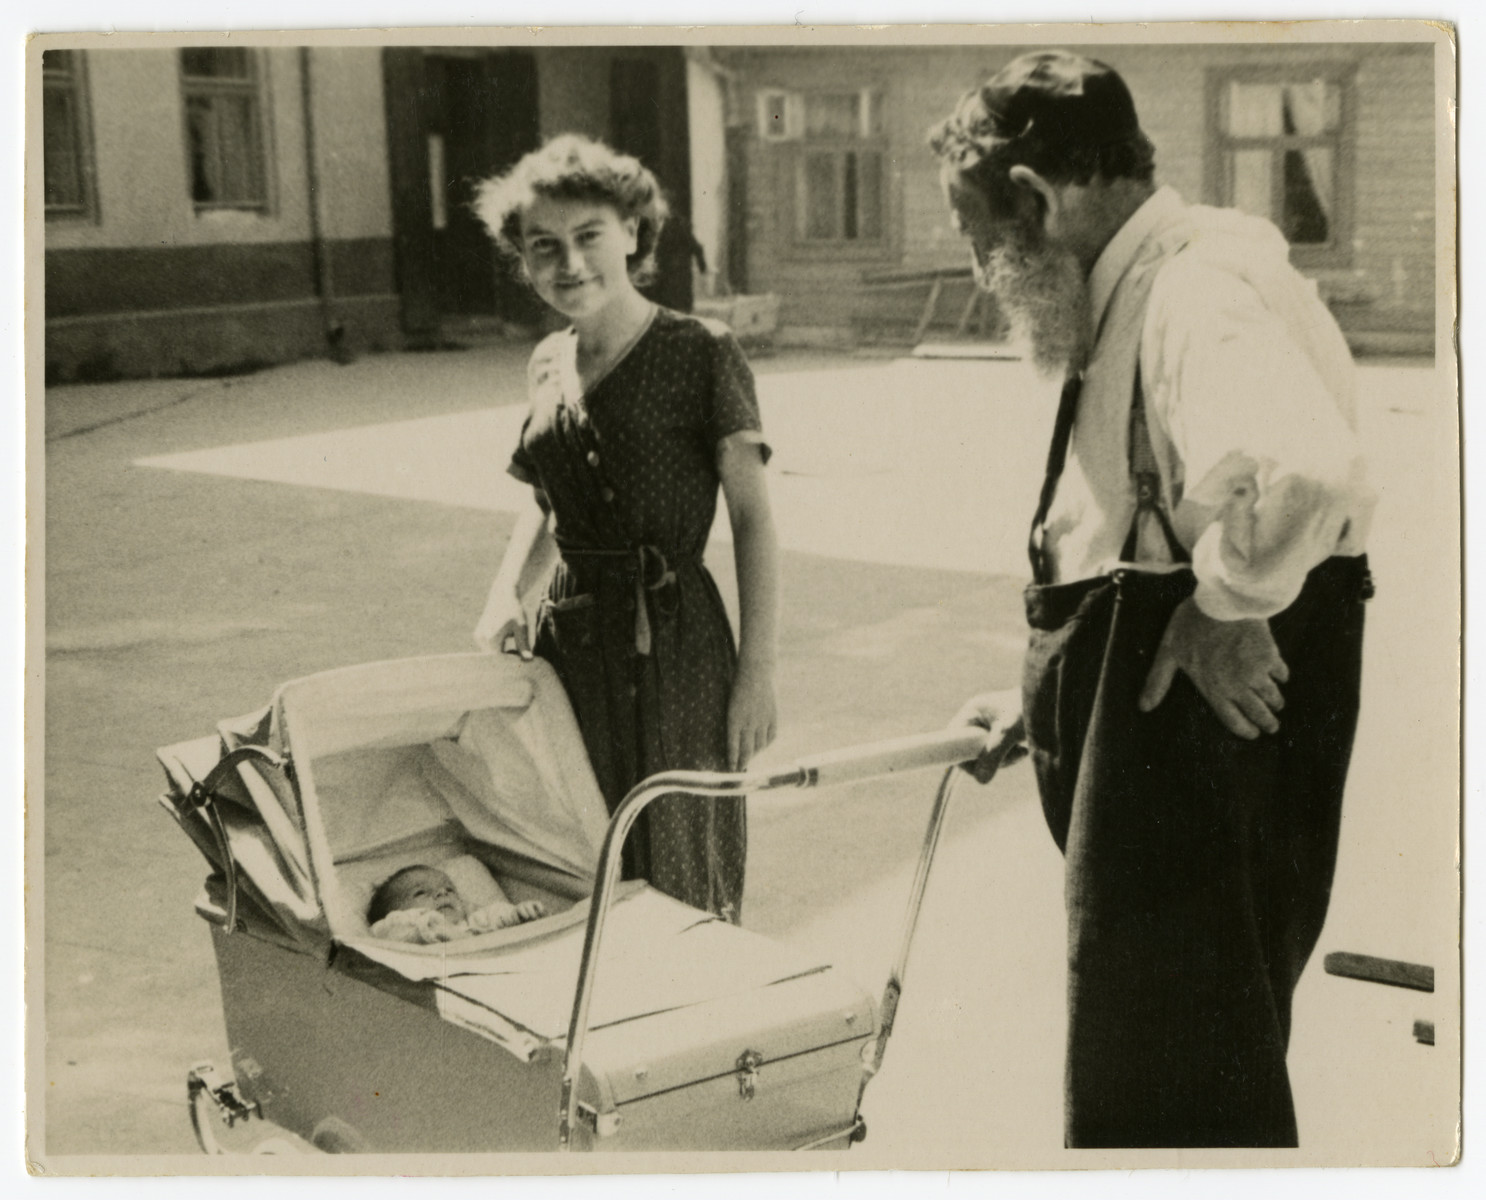 Shmuel Dawid Grosman pushes his grandson in a baby carriage while his younger daughter Ruszka looks on.